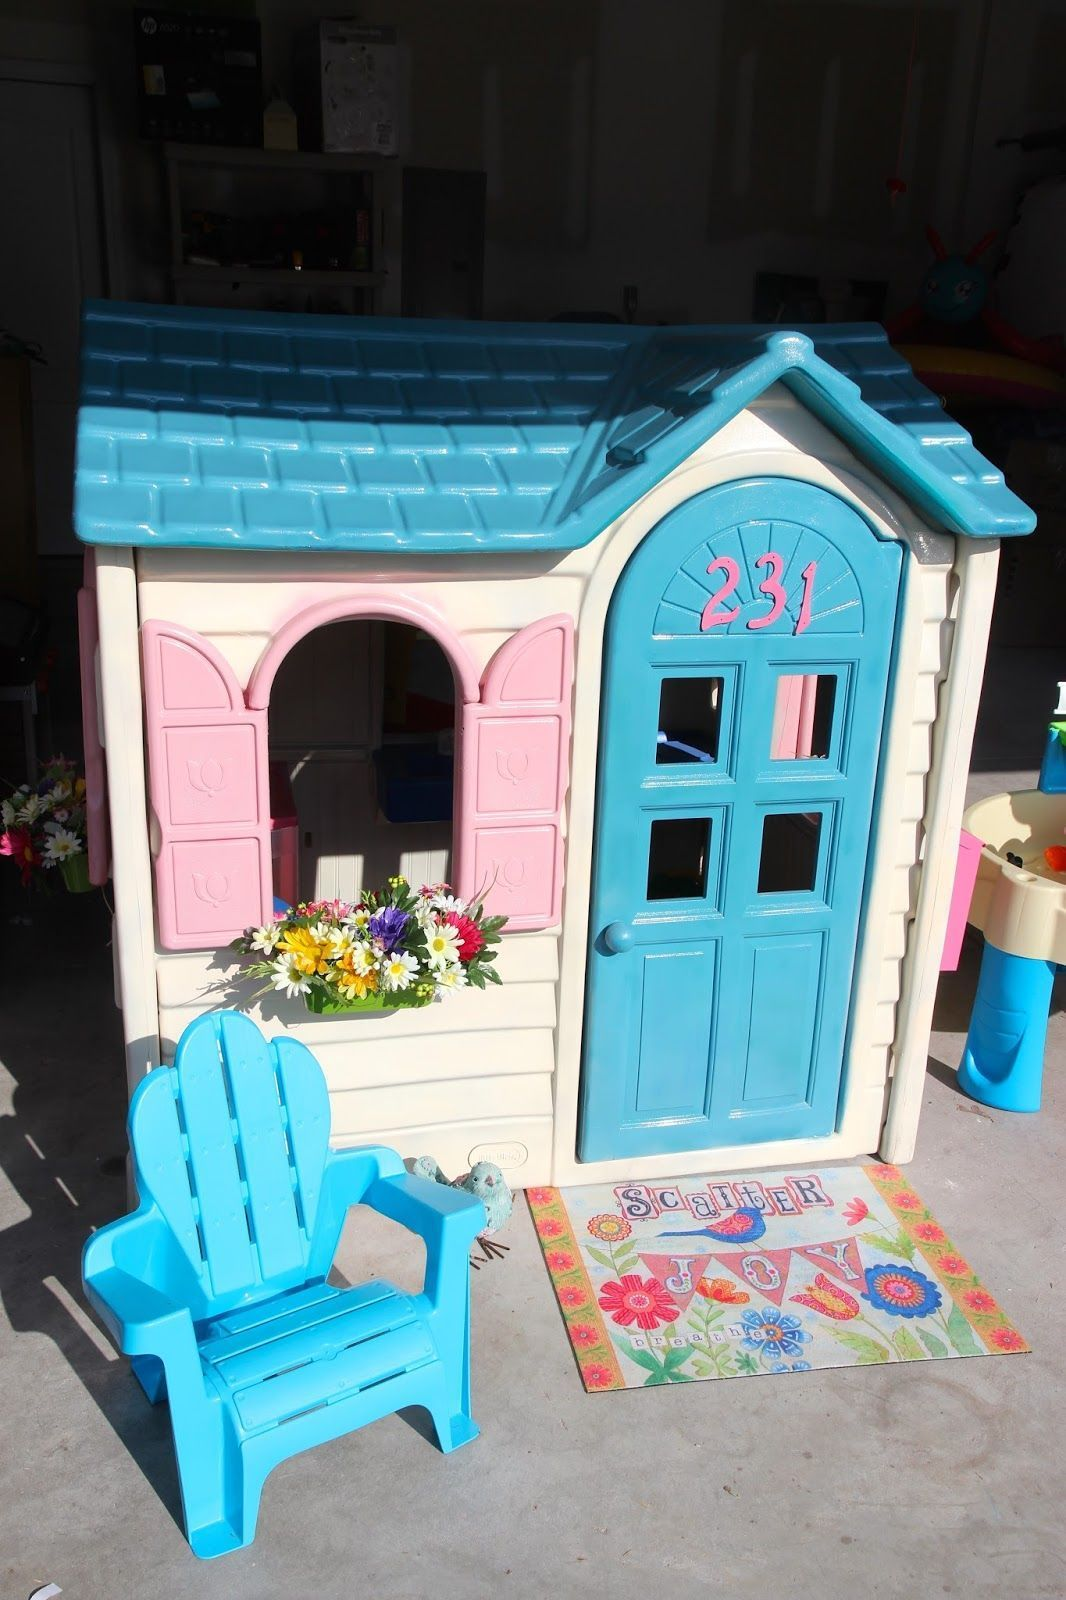 Building a Playhouse for Kids Little tikes playhouse